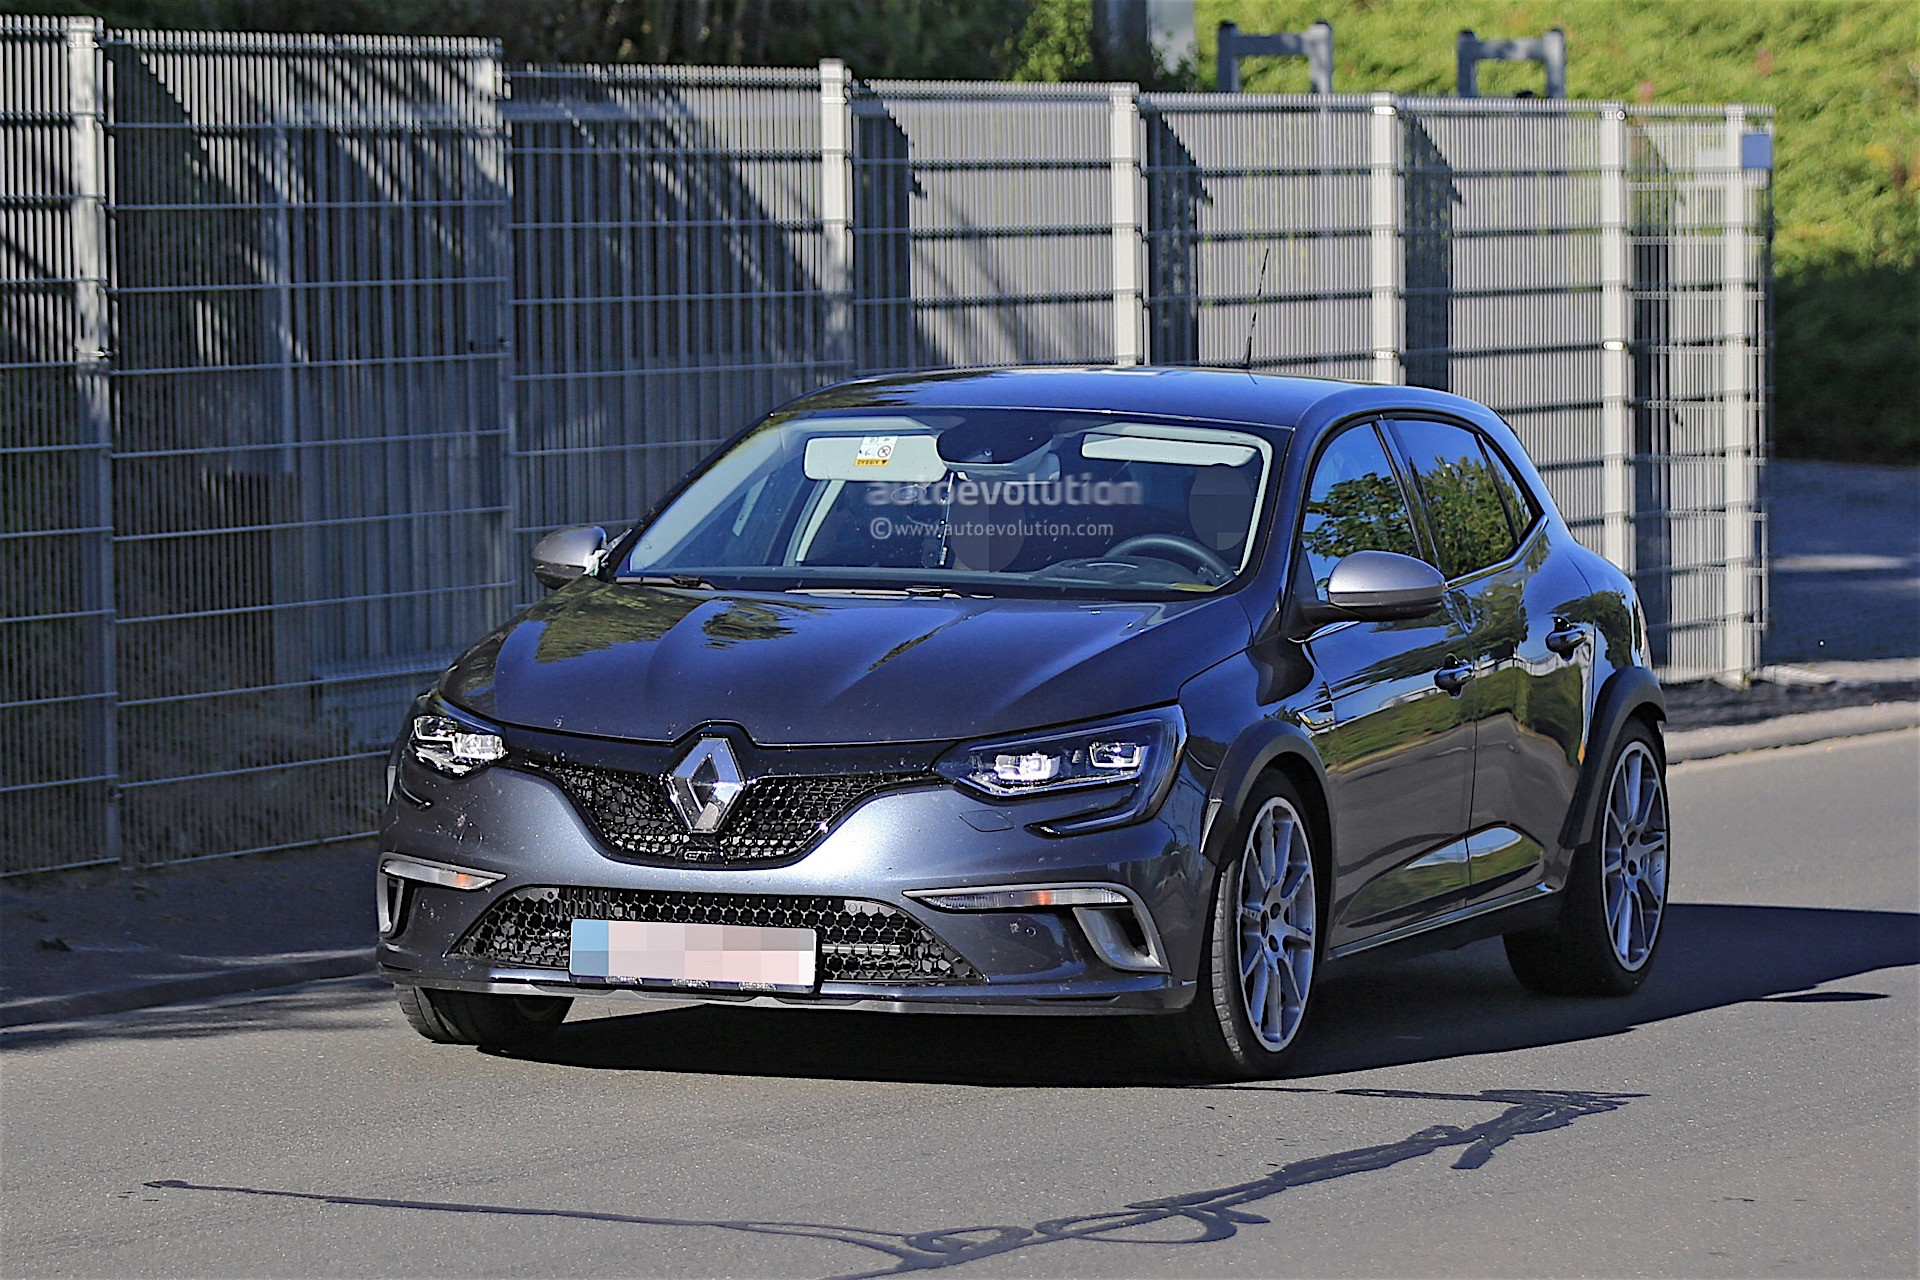 2018 renault megane rs confirmed for european market launch in september 2017 autoevolution. Black Bedroom Furniture Sets. Home Design Ideas